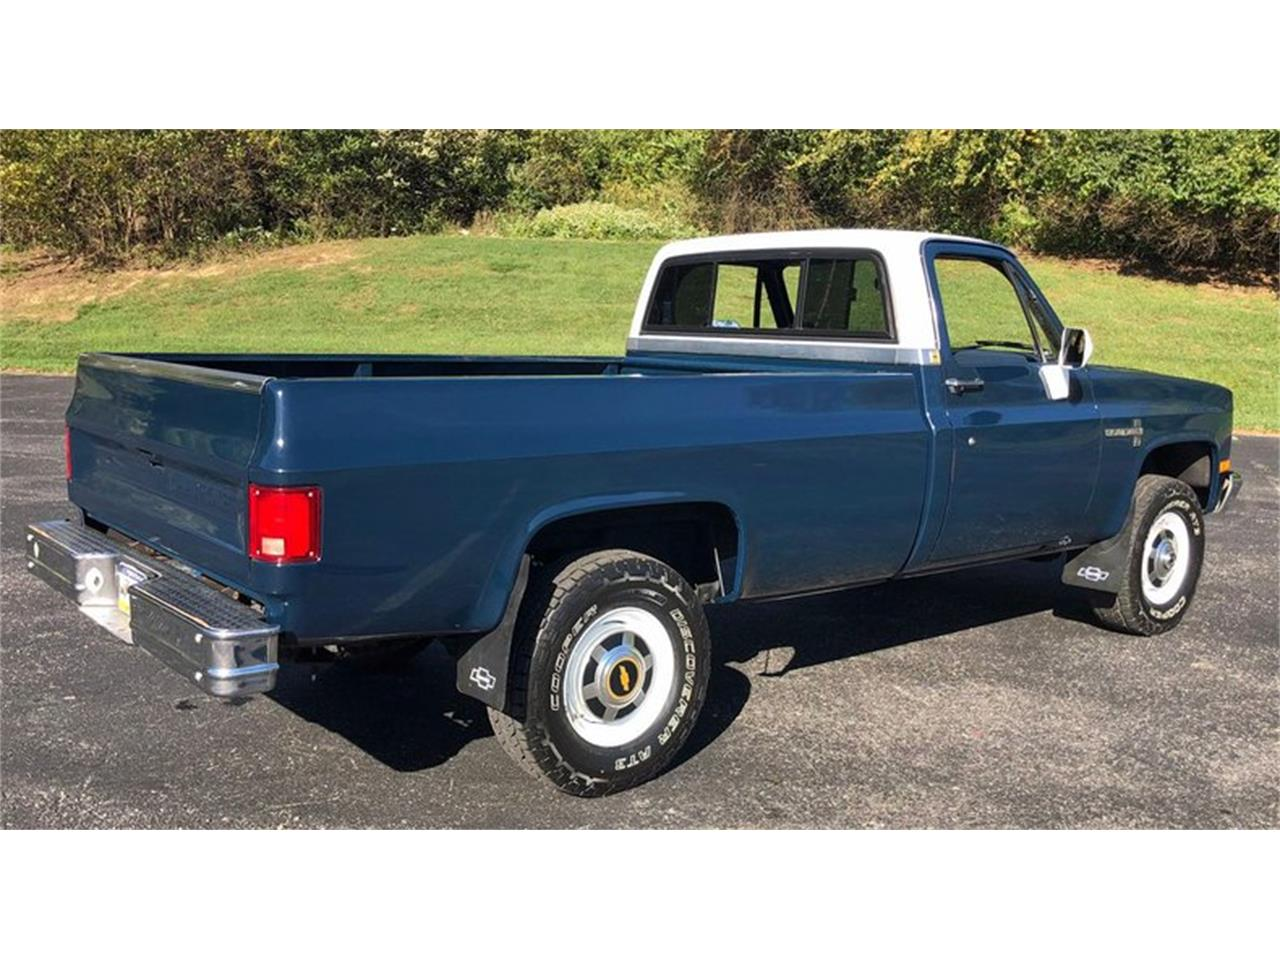 1987 Chevrolet K-20 (CC-1415529) for sale in West Chester, Pennsylvania